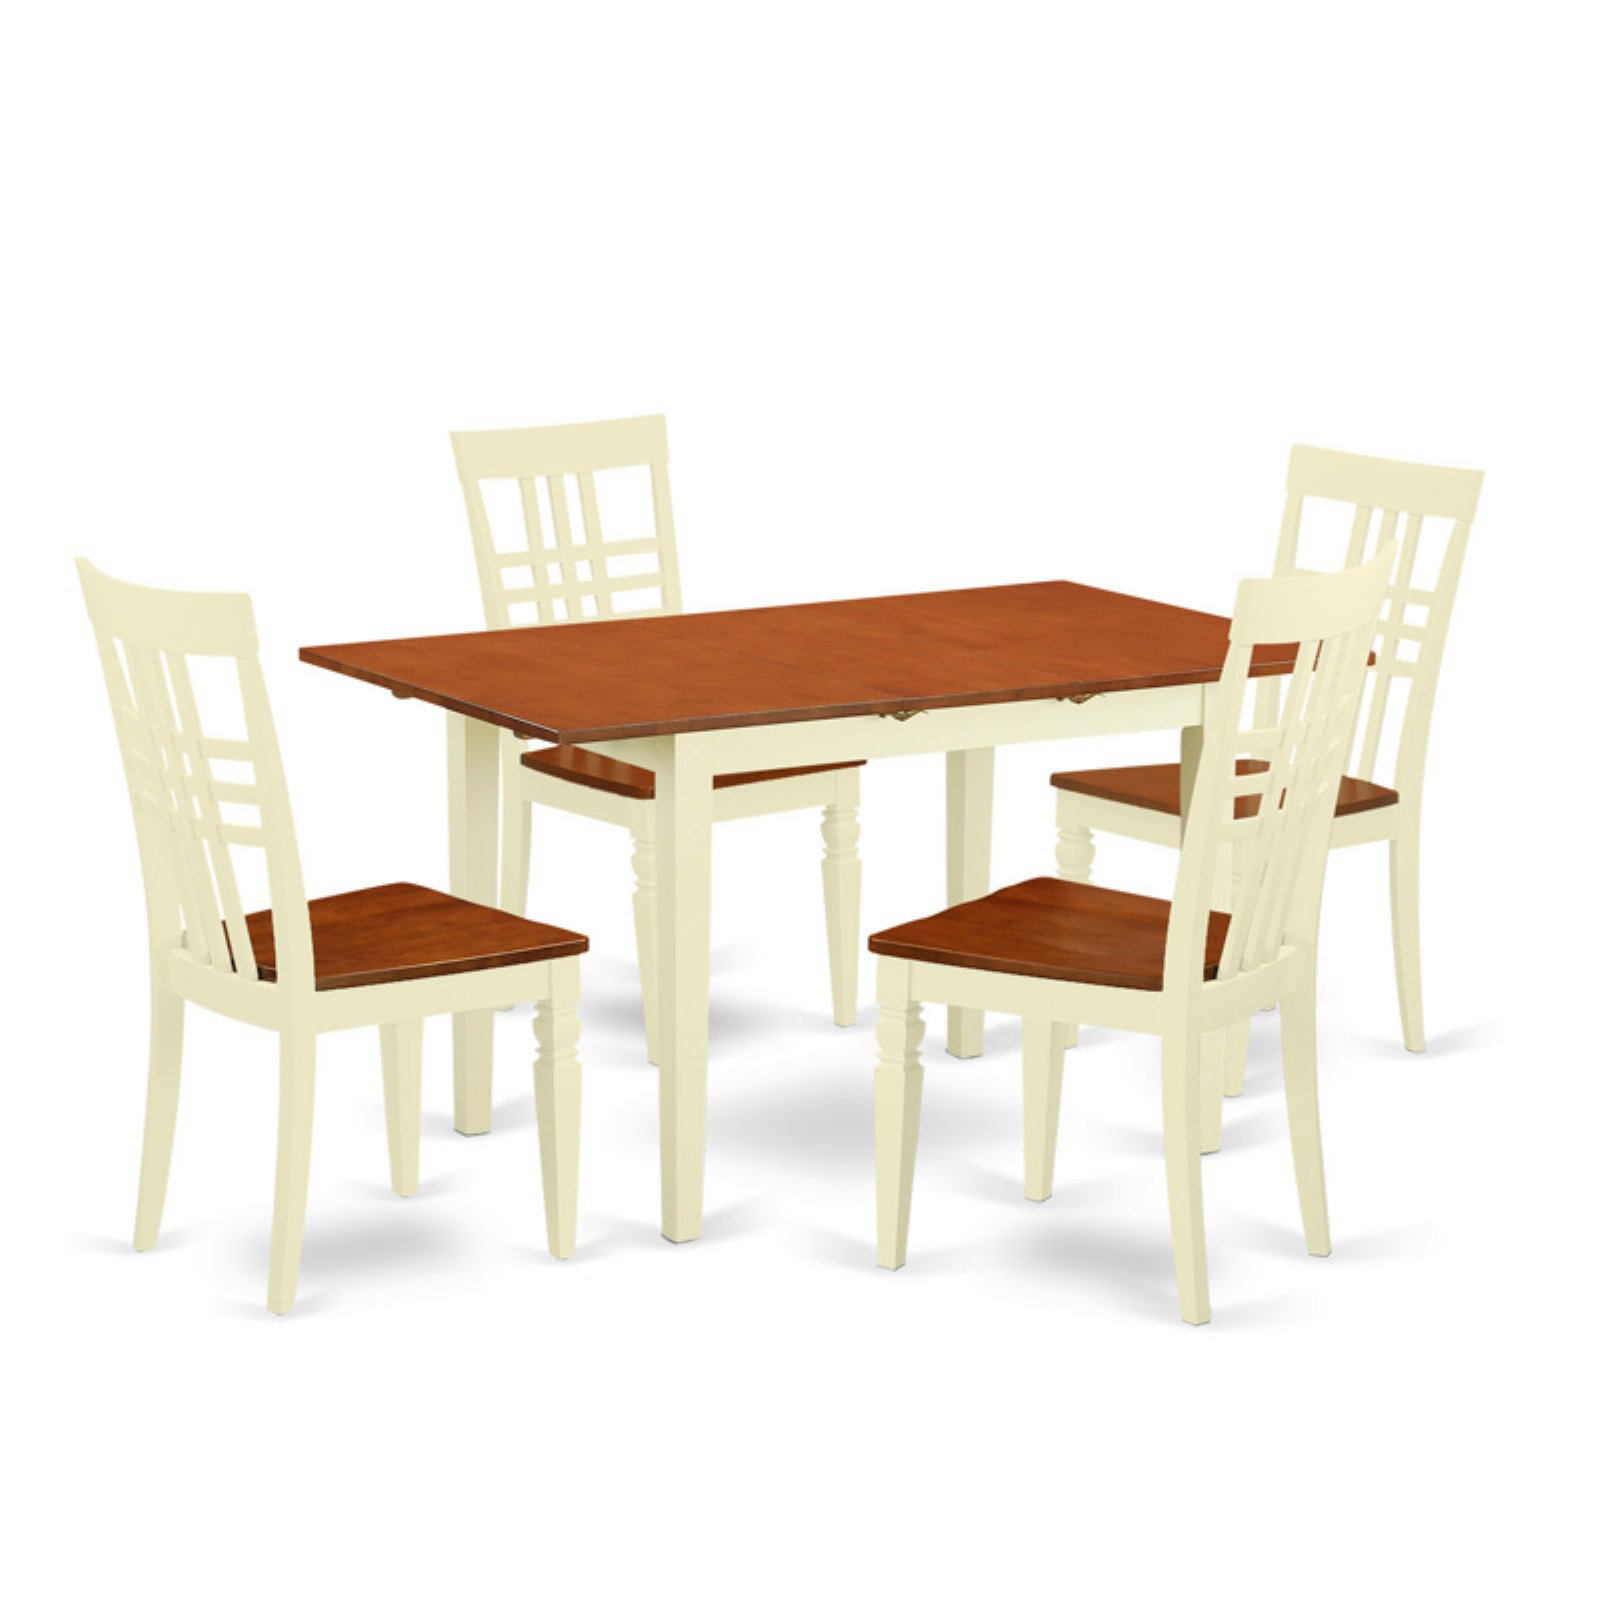 East West Furniture Norfolk 5 Piece Lattice Back Dining Table Set Pertaining To 2018 West Dining Tables (View 17 of 25)